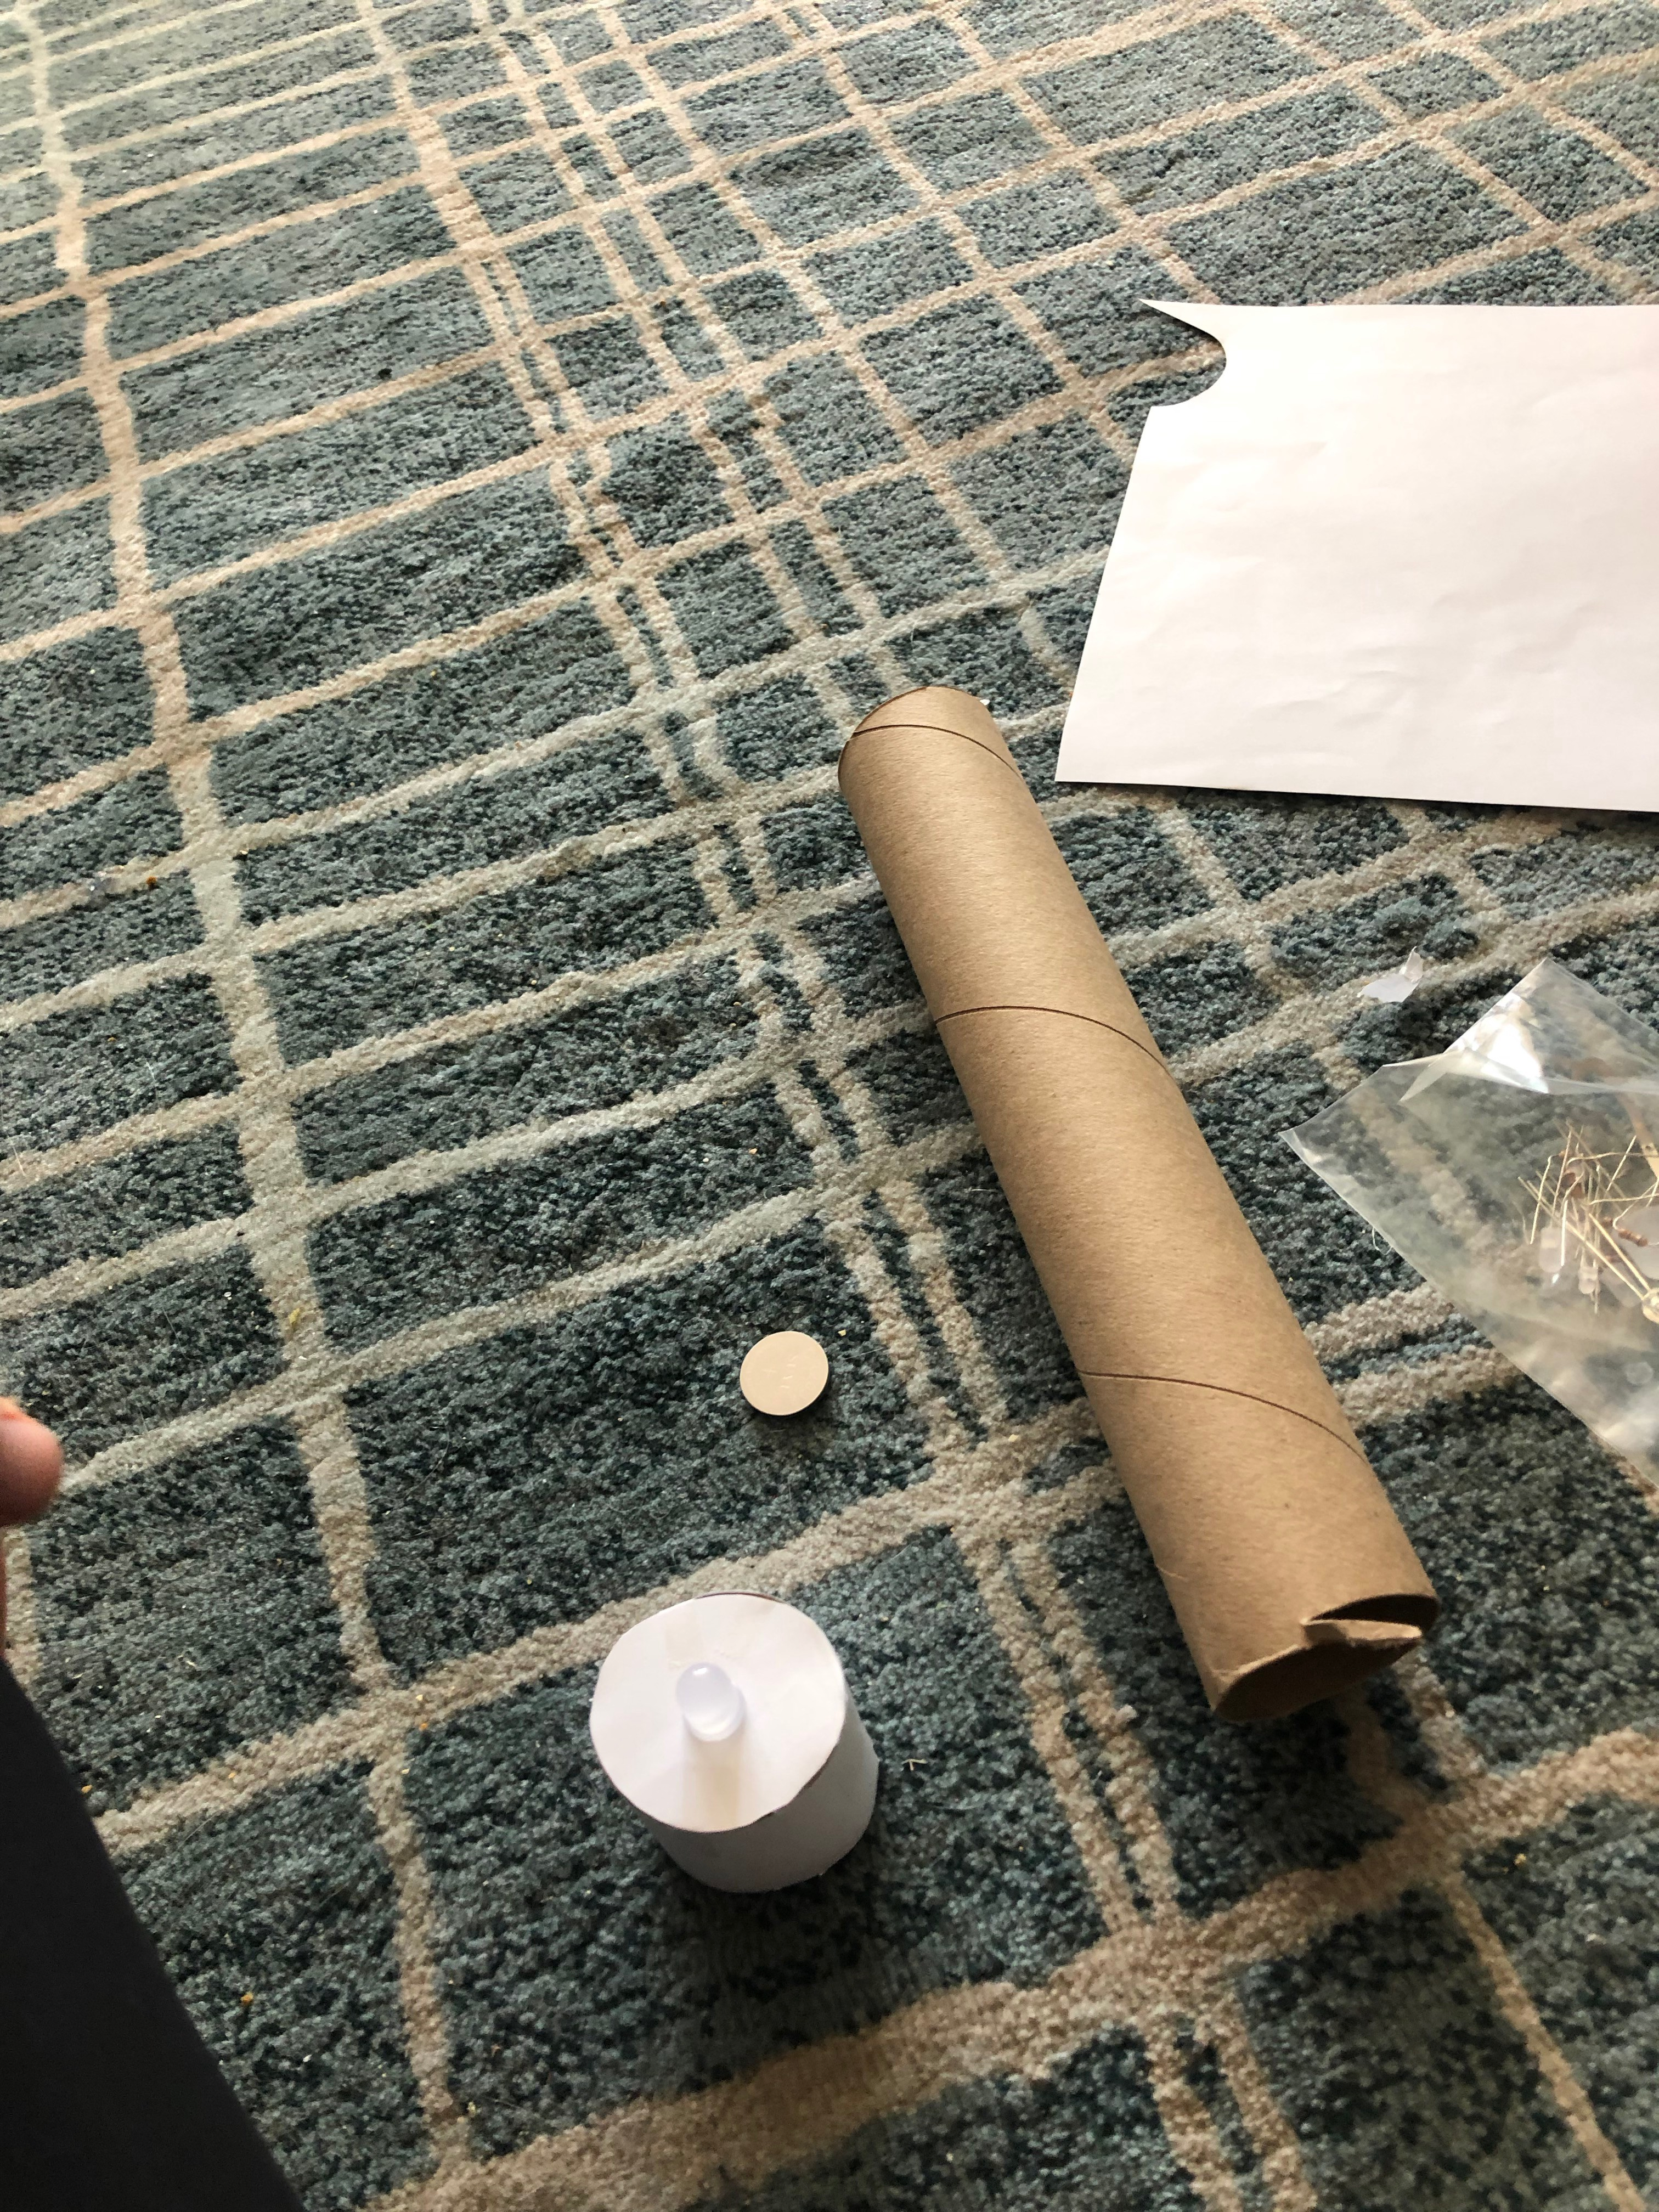 A picture of the paper, paper towel roll and LEDs I used to make a paper tea light enclosure.